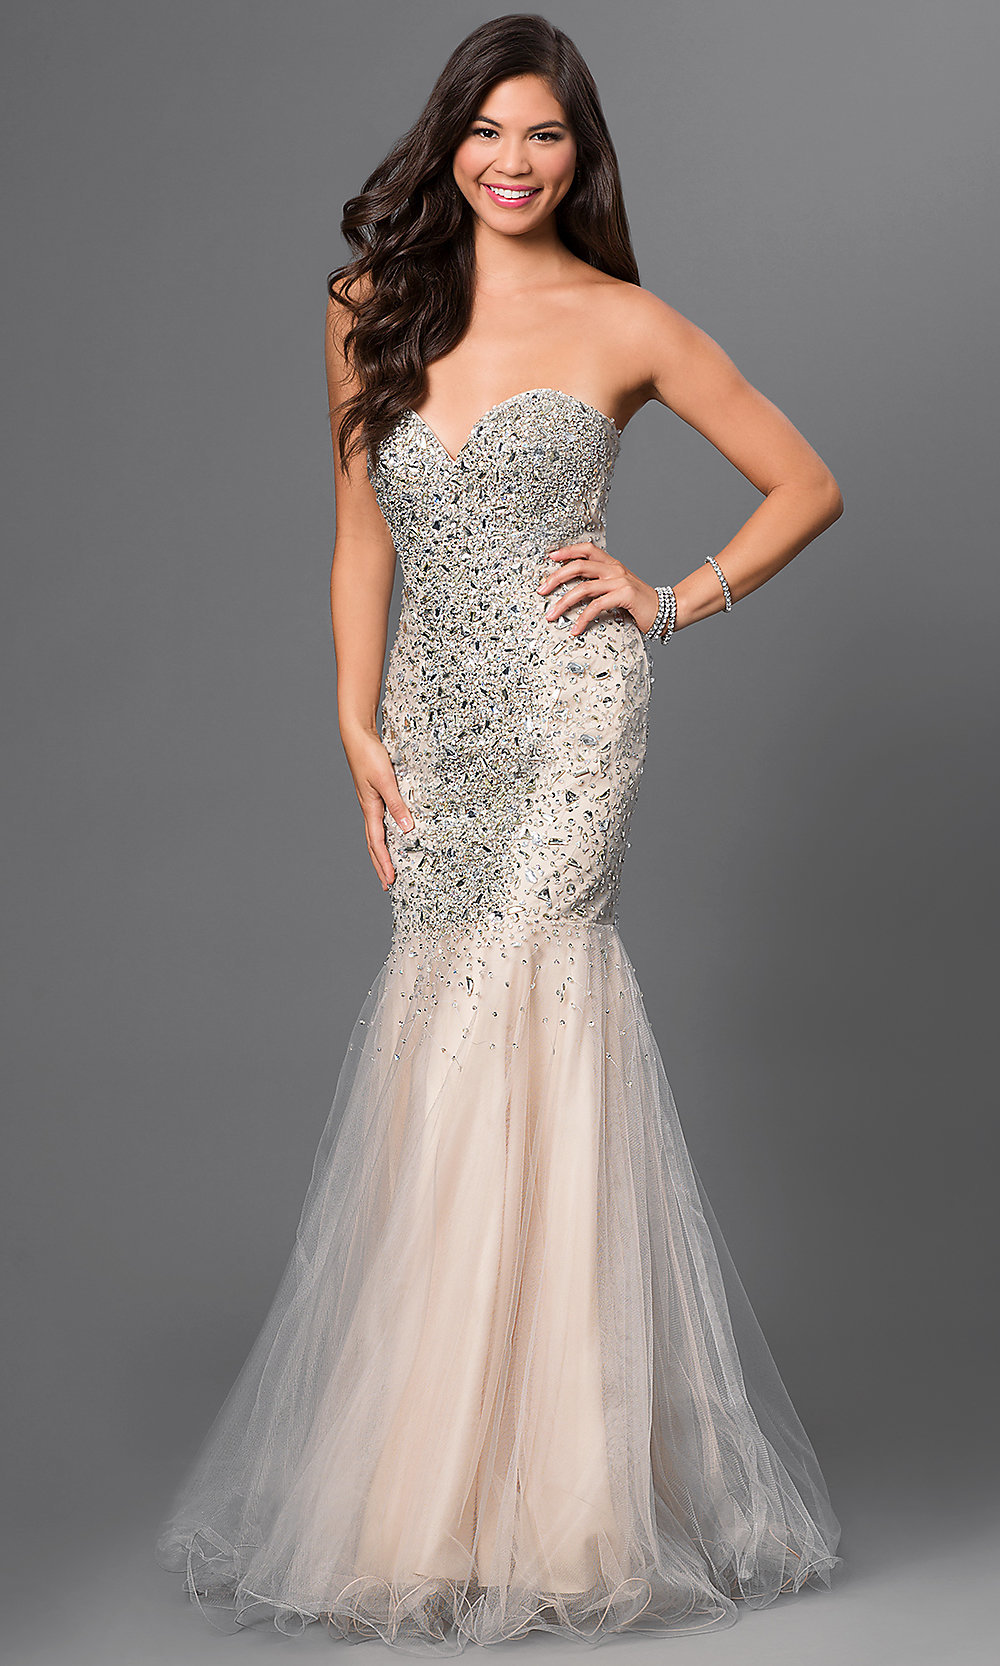 Mermaid Evening Gowns Long Prom Dresses